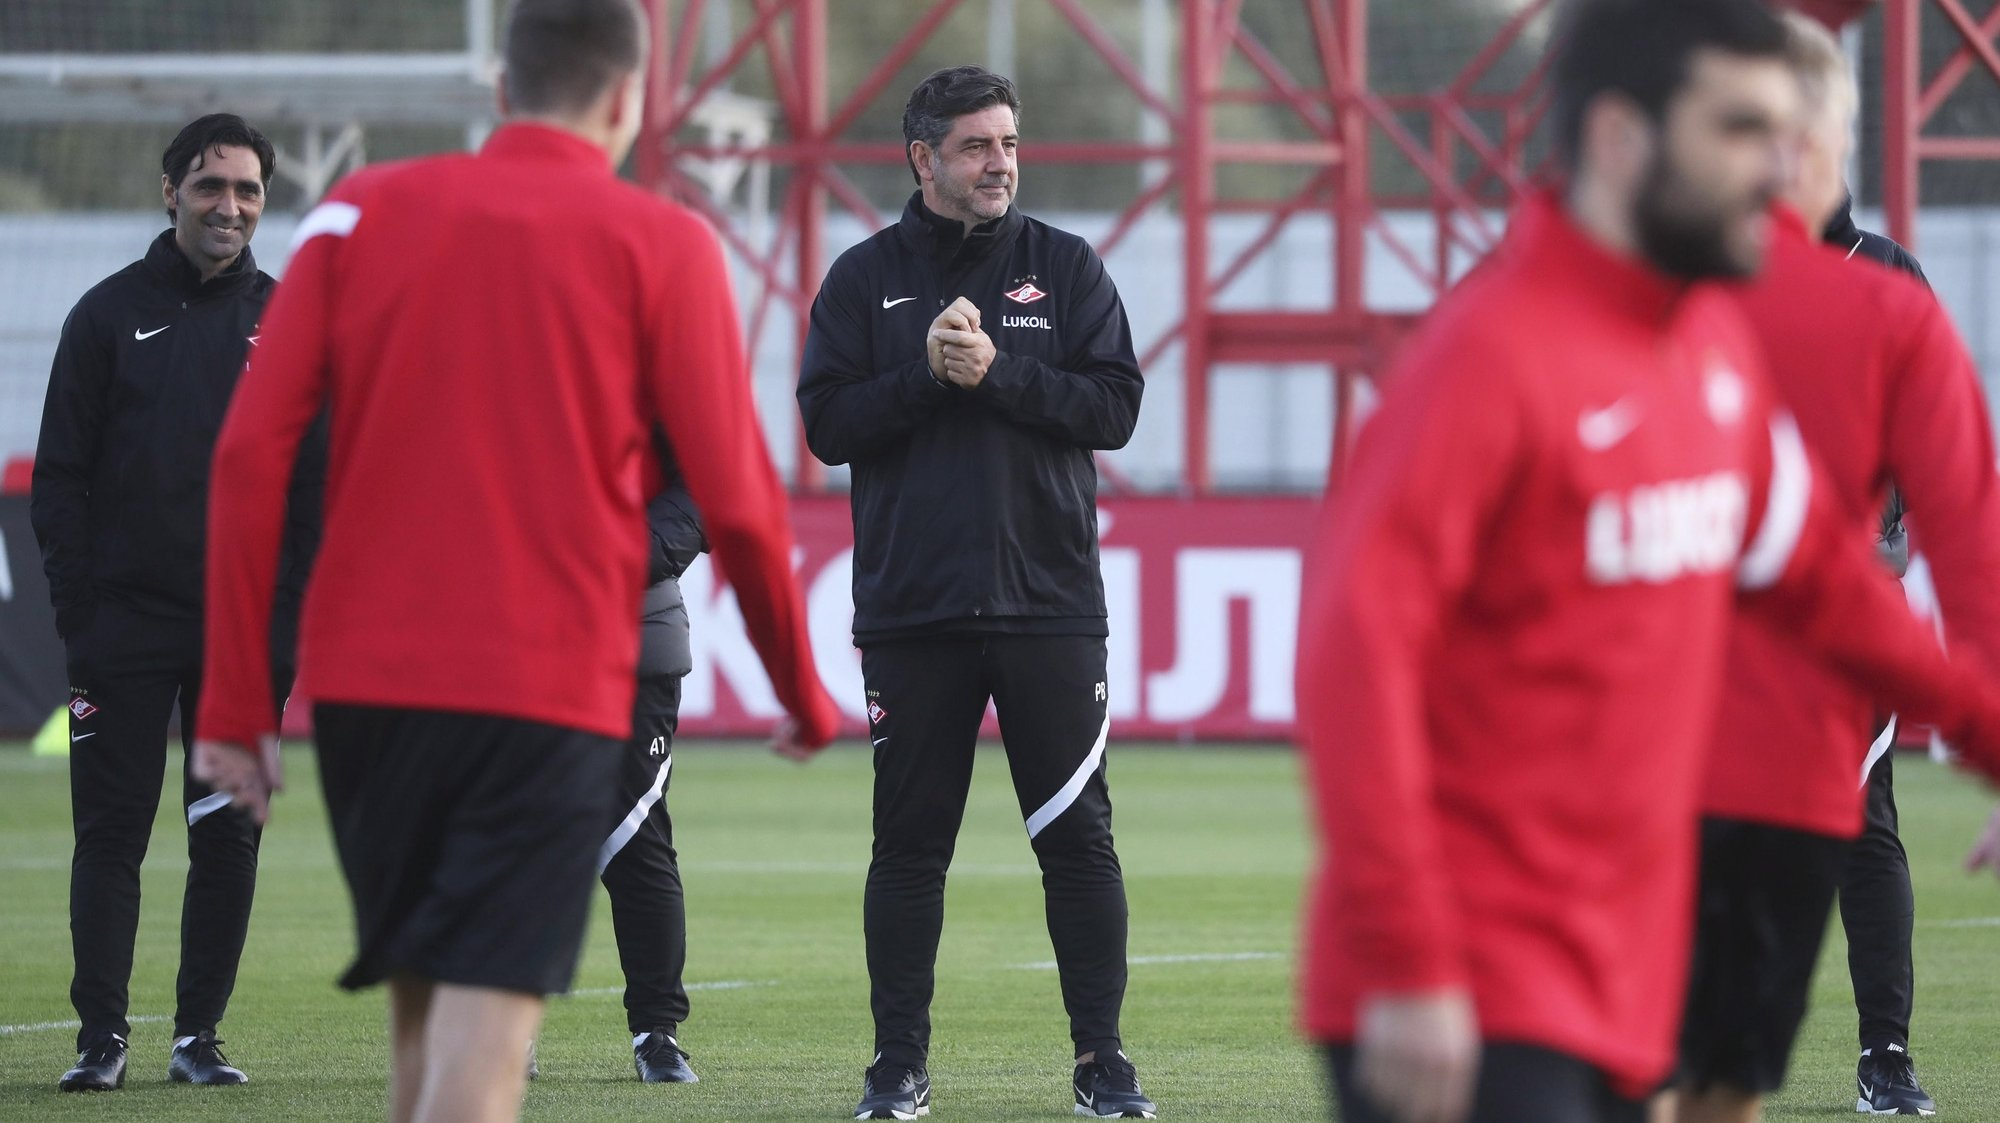 epa09467785 Head coach of Spartak Moscow, Rui Vitoria (C), leads a training session in Moscow, Russia, 14 September 2021. Spartak Moscow will face Legia Warsaw in their UEFA Europa League group C soccer match on 15 September 2021.  EPA/MAXIM SHIPENKOV